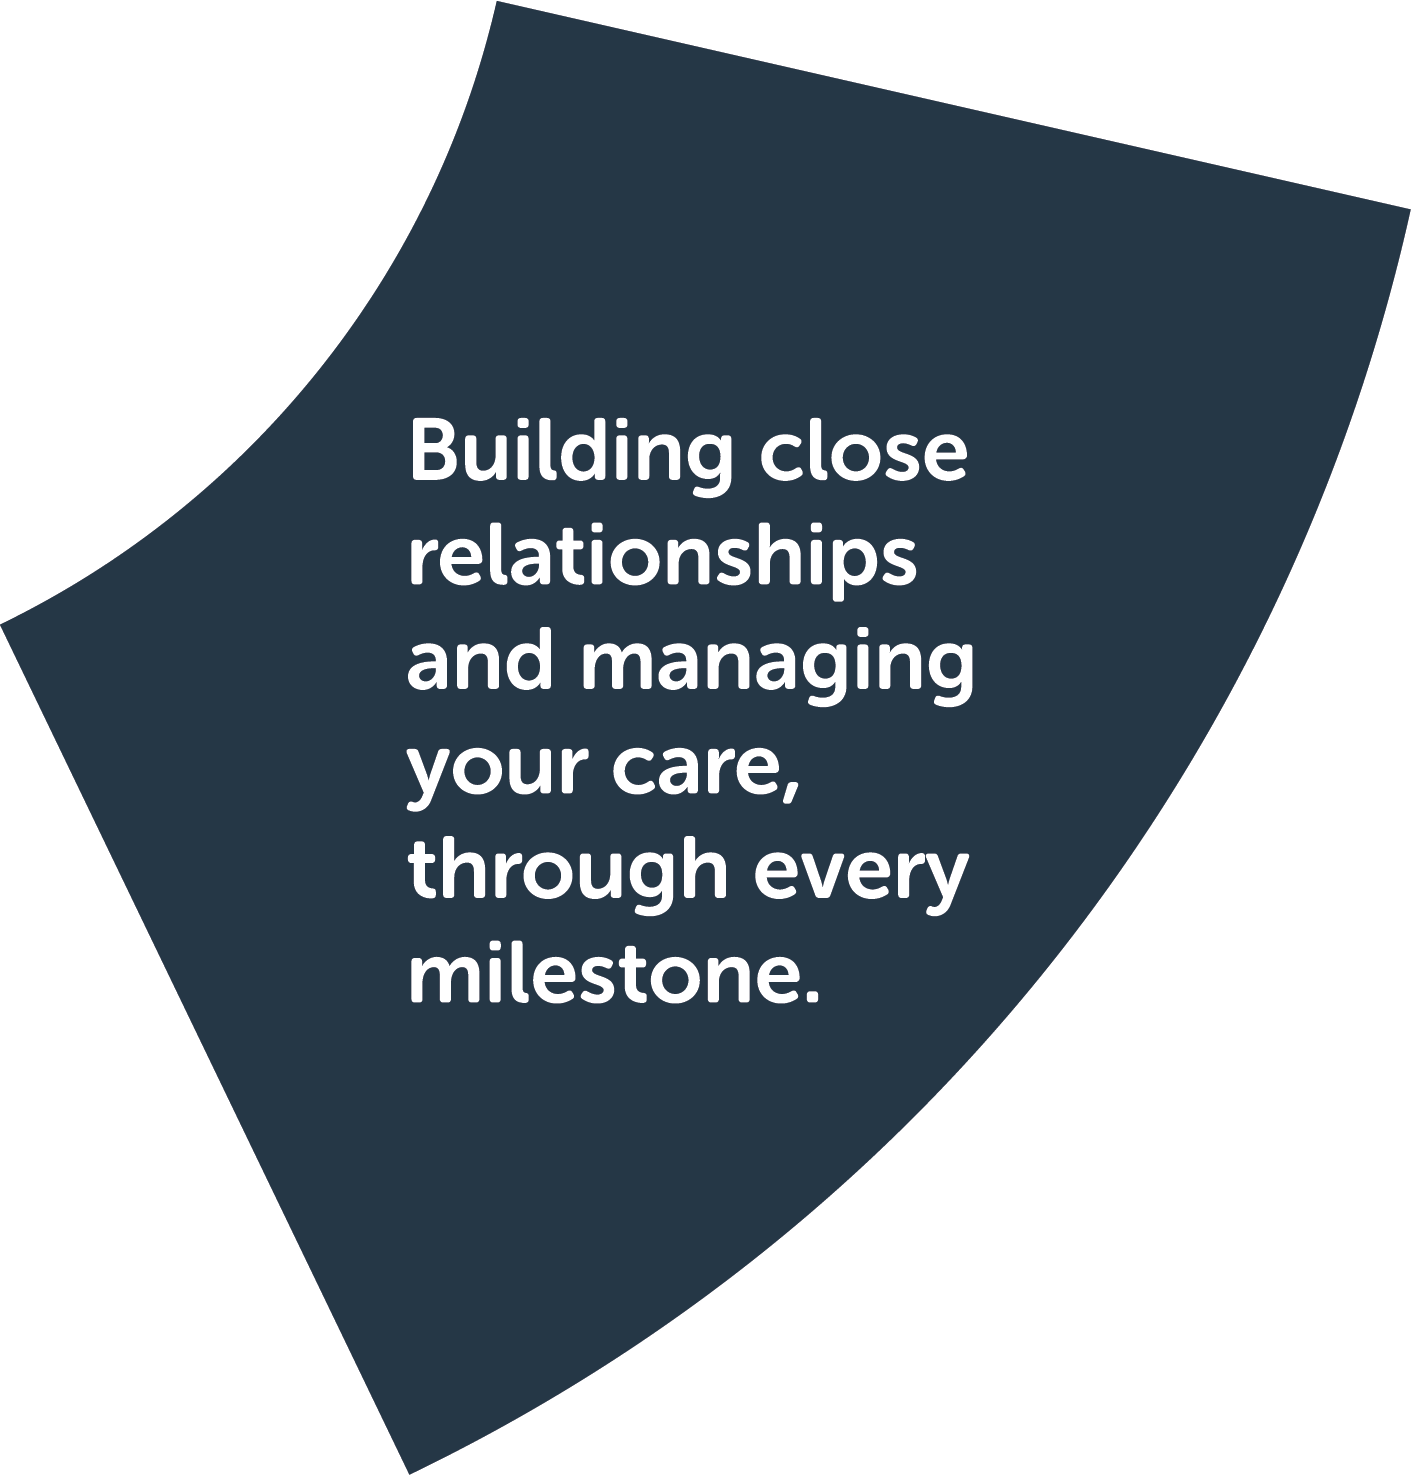 Step 3: Plan my future. Building close relationships and managing your care, through every milestone.